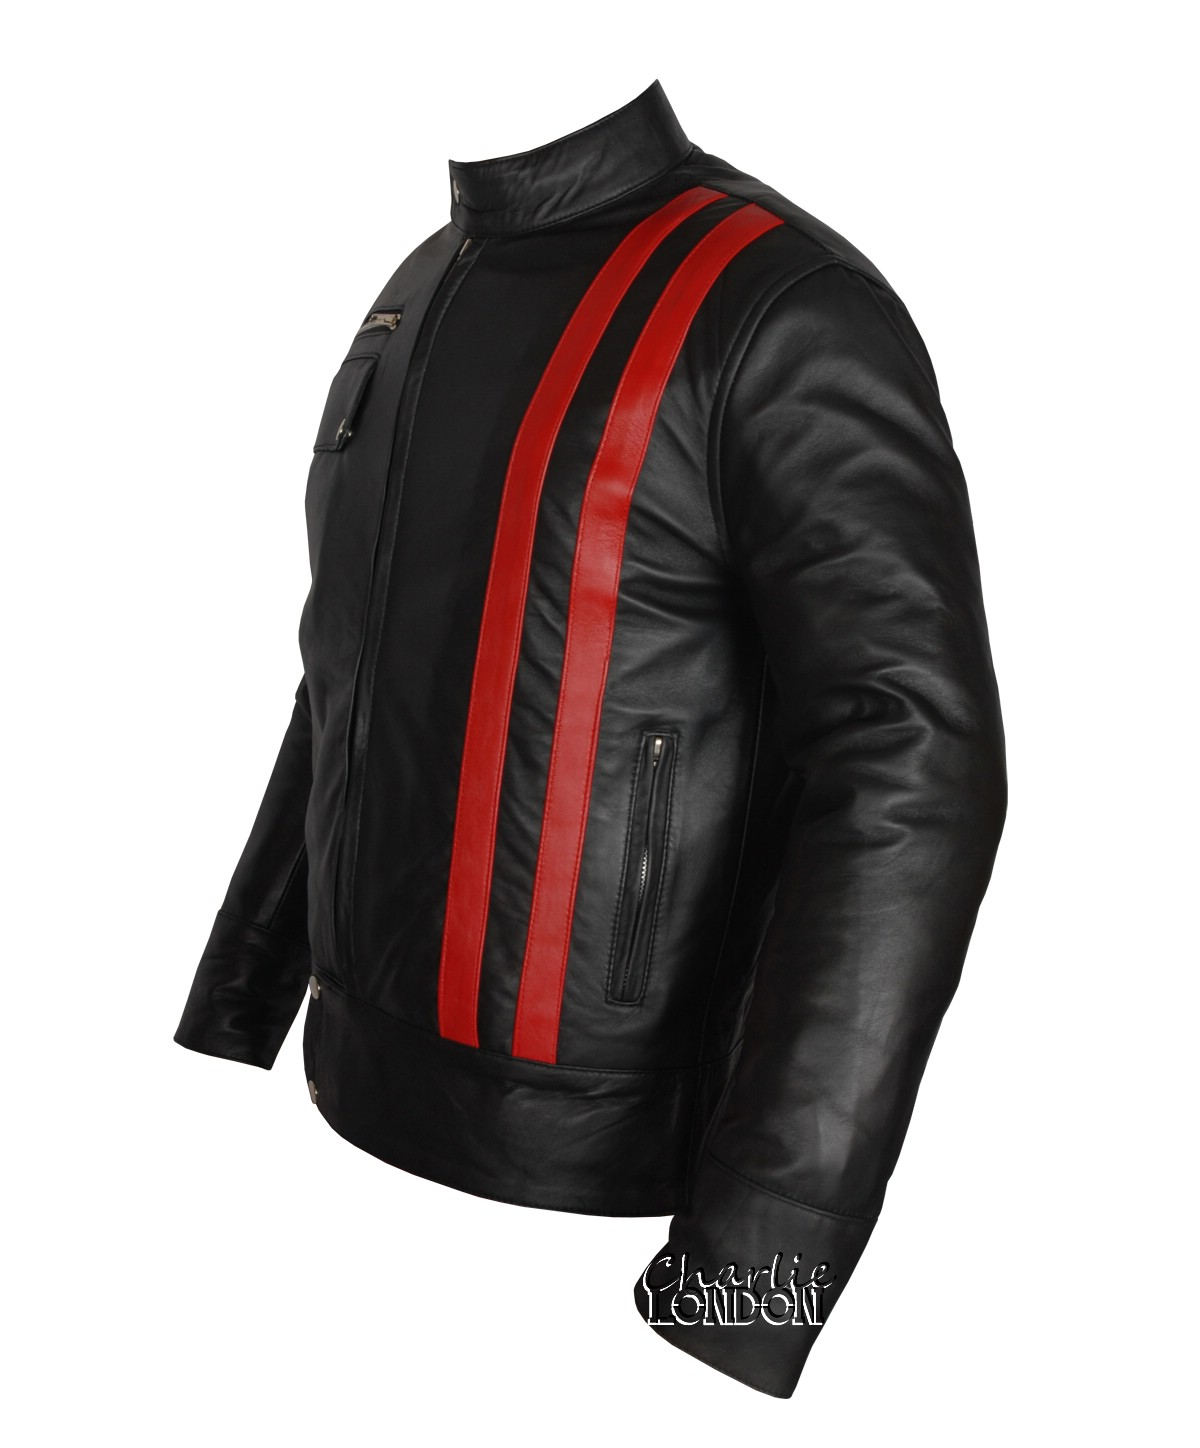 Smart Cafe Racer Retro Style Striped Leather Jacket | Charlie London - Leather Jackets for Men and Women - FREE UK DELIVERY